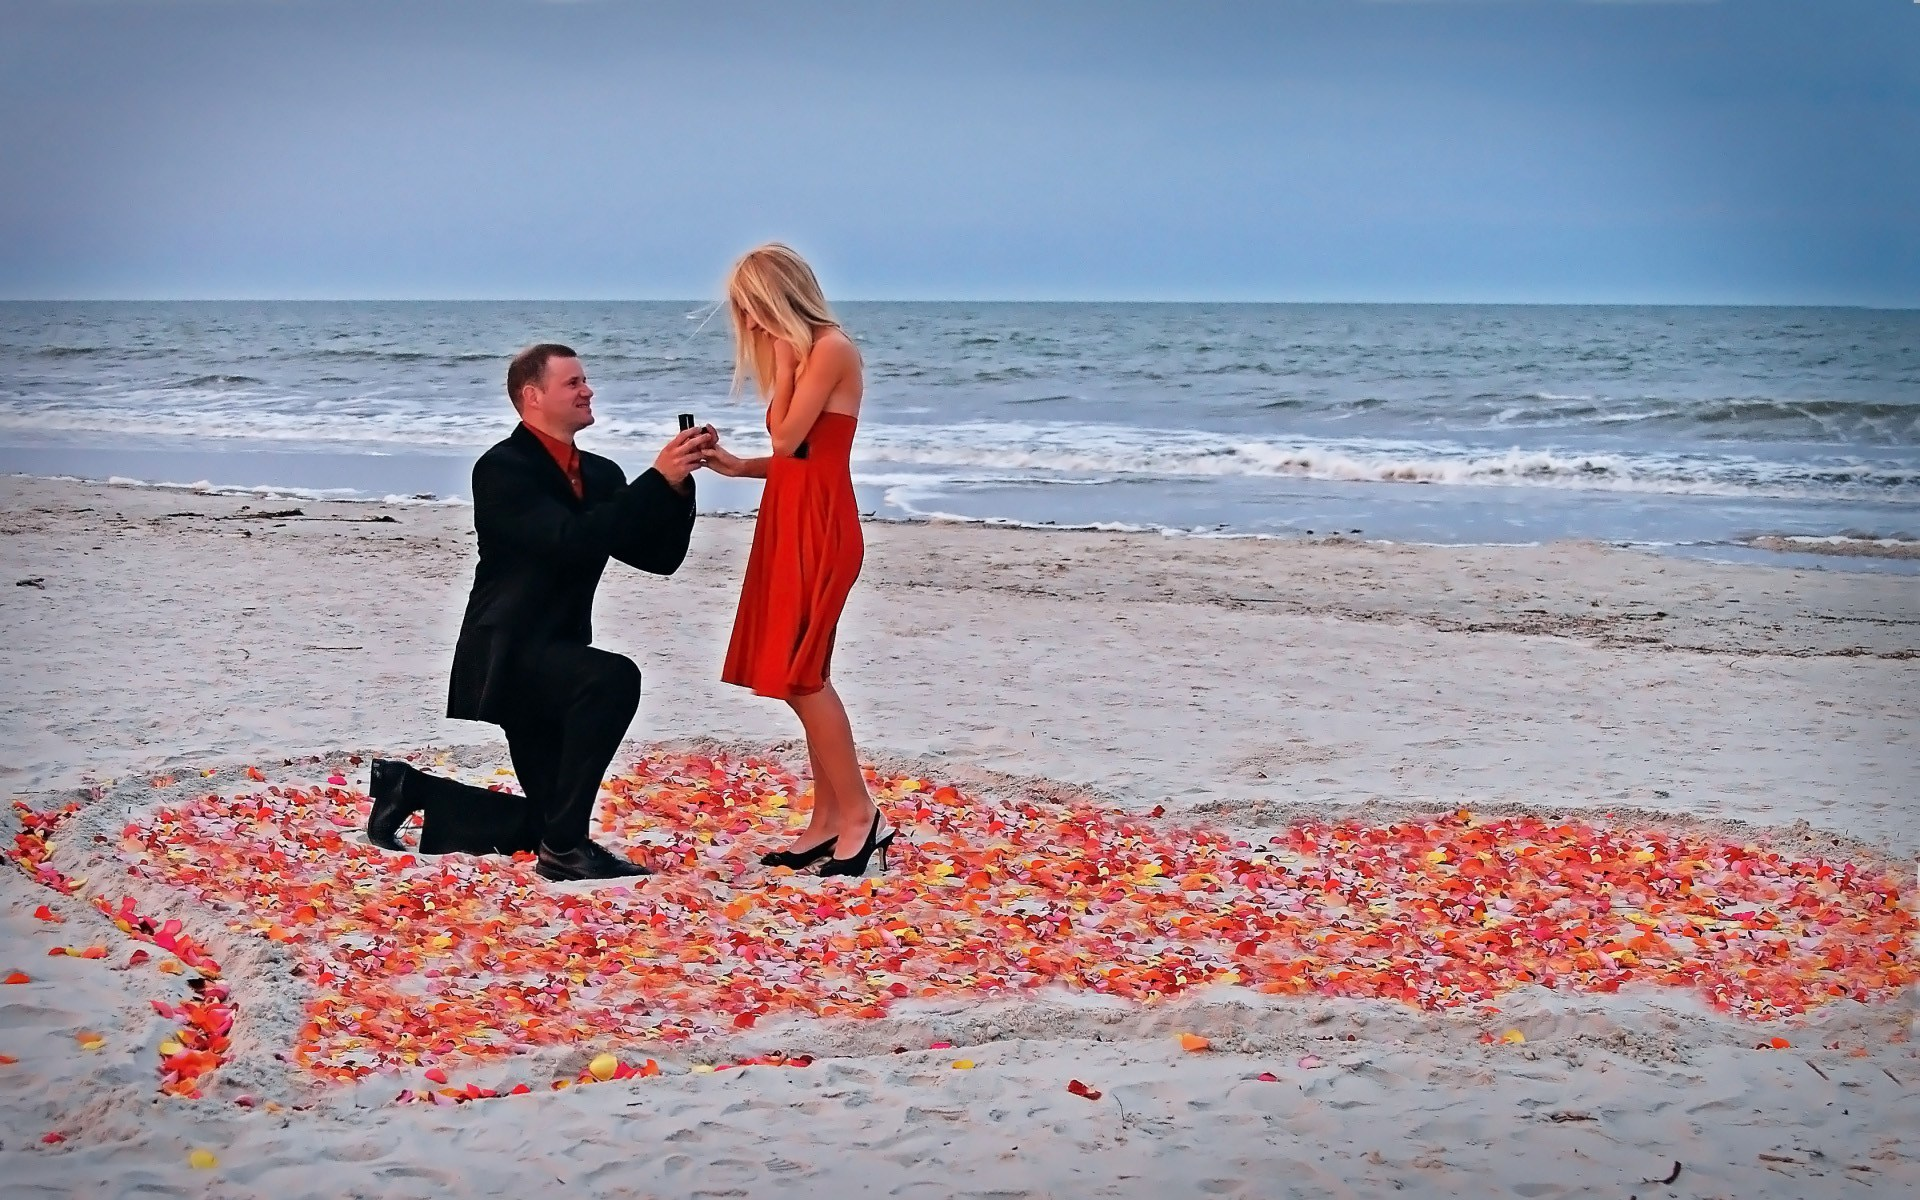 happy_propose_day_sms